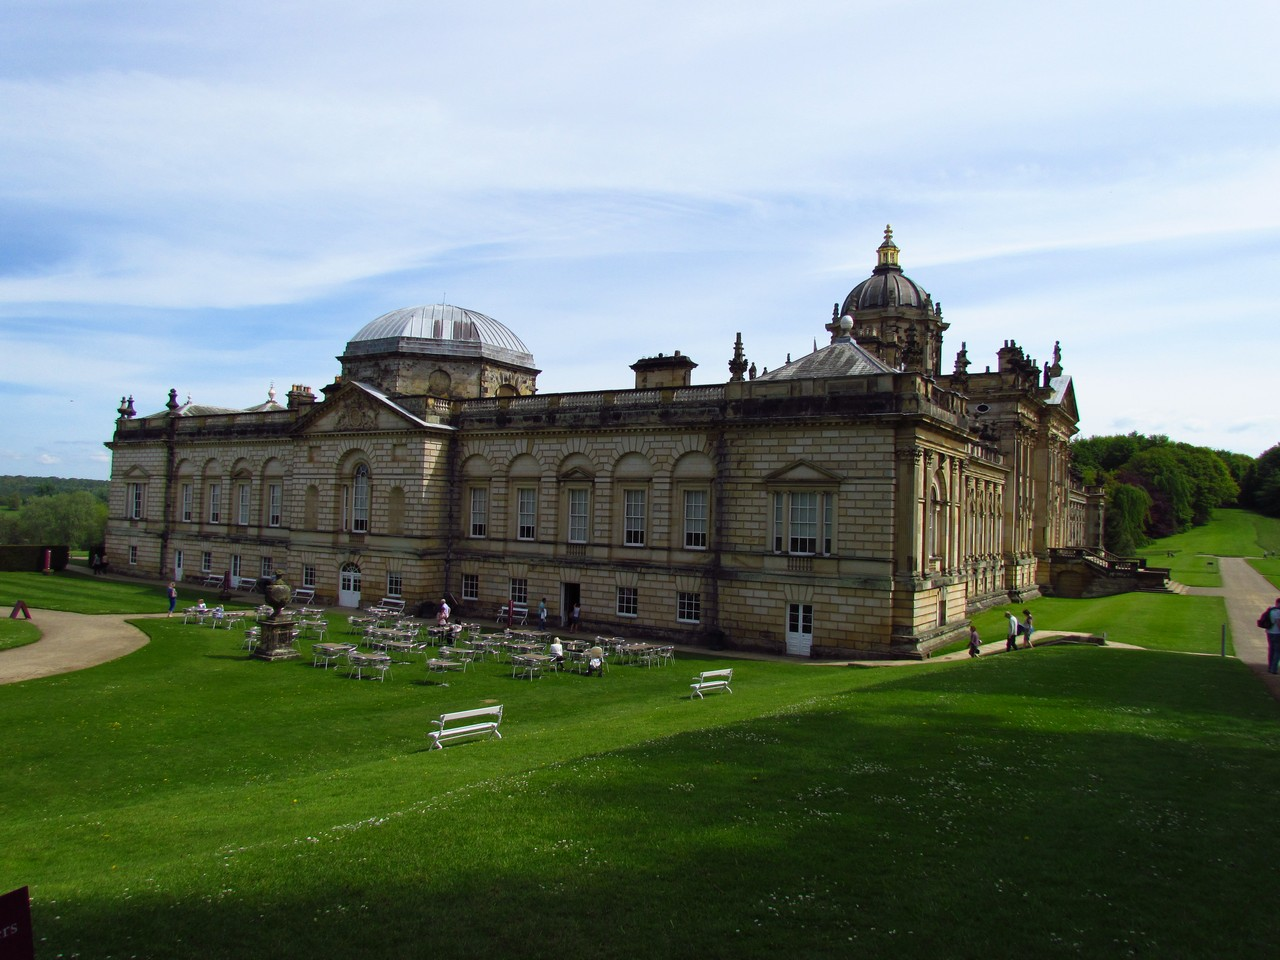 Castle howard york residents weekend